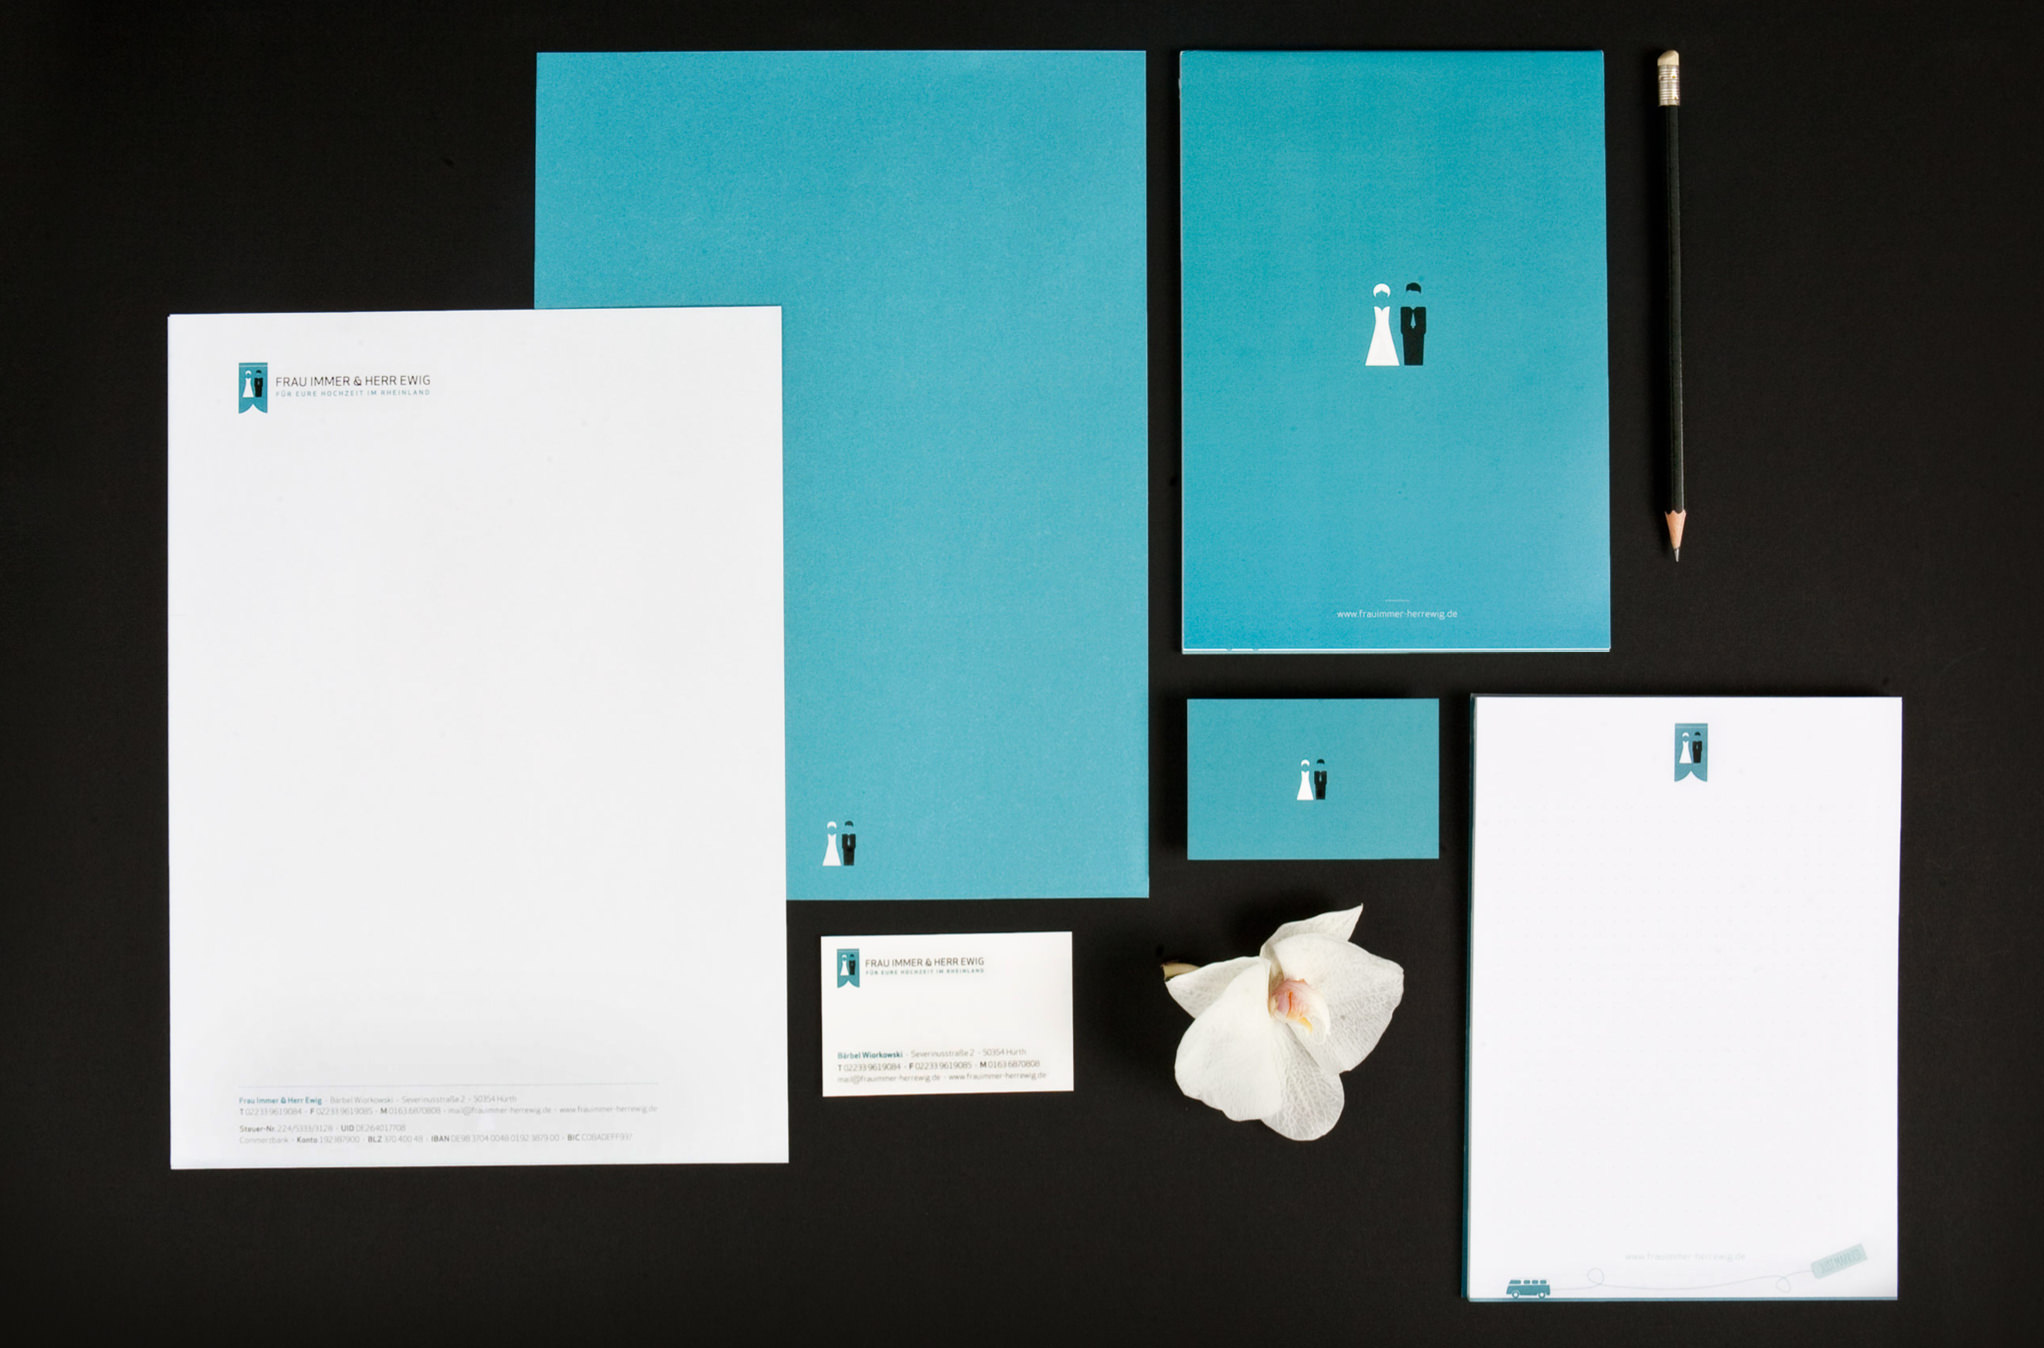 Office equipment (writing paper, business card, notepad) for the wedding planners from the rhineland Frau Immer und Herr Ewig by sons of ipanema a graphic design studio from cologne.